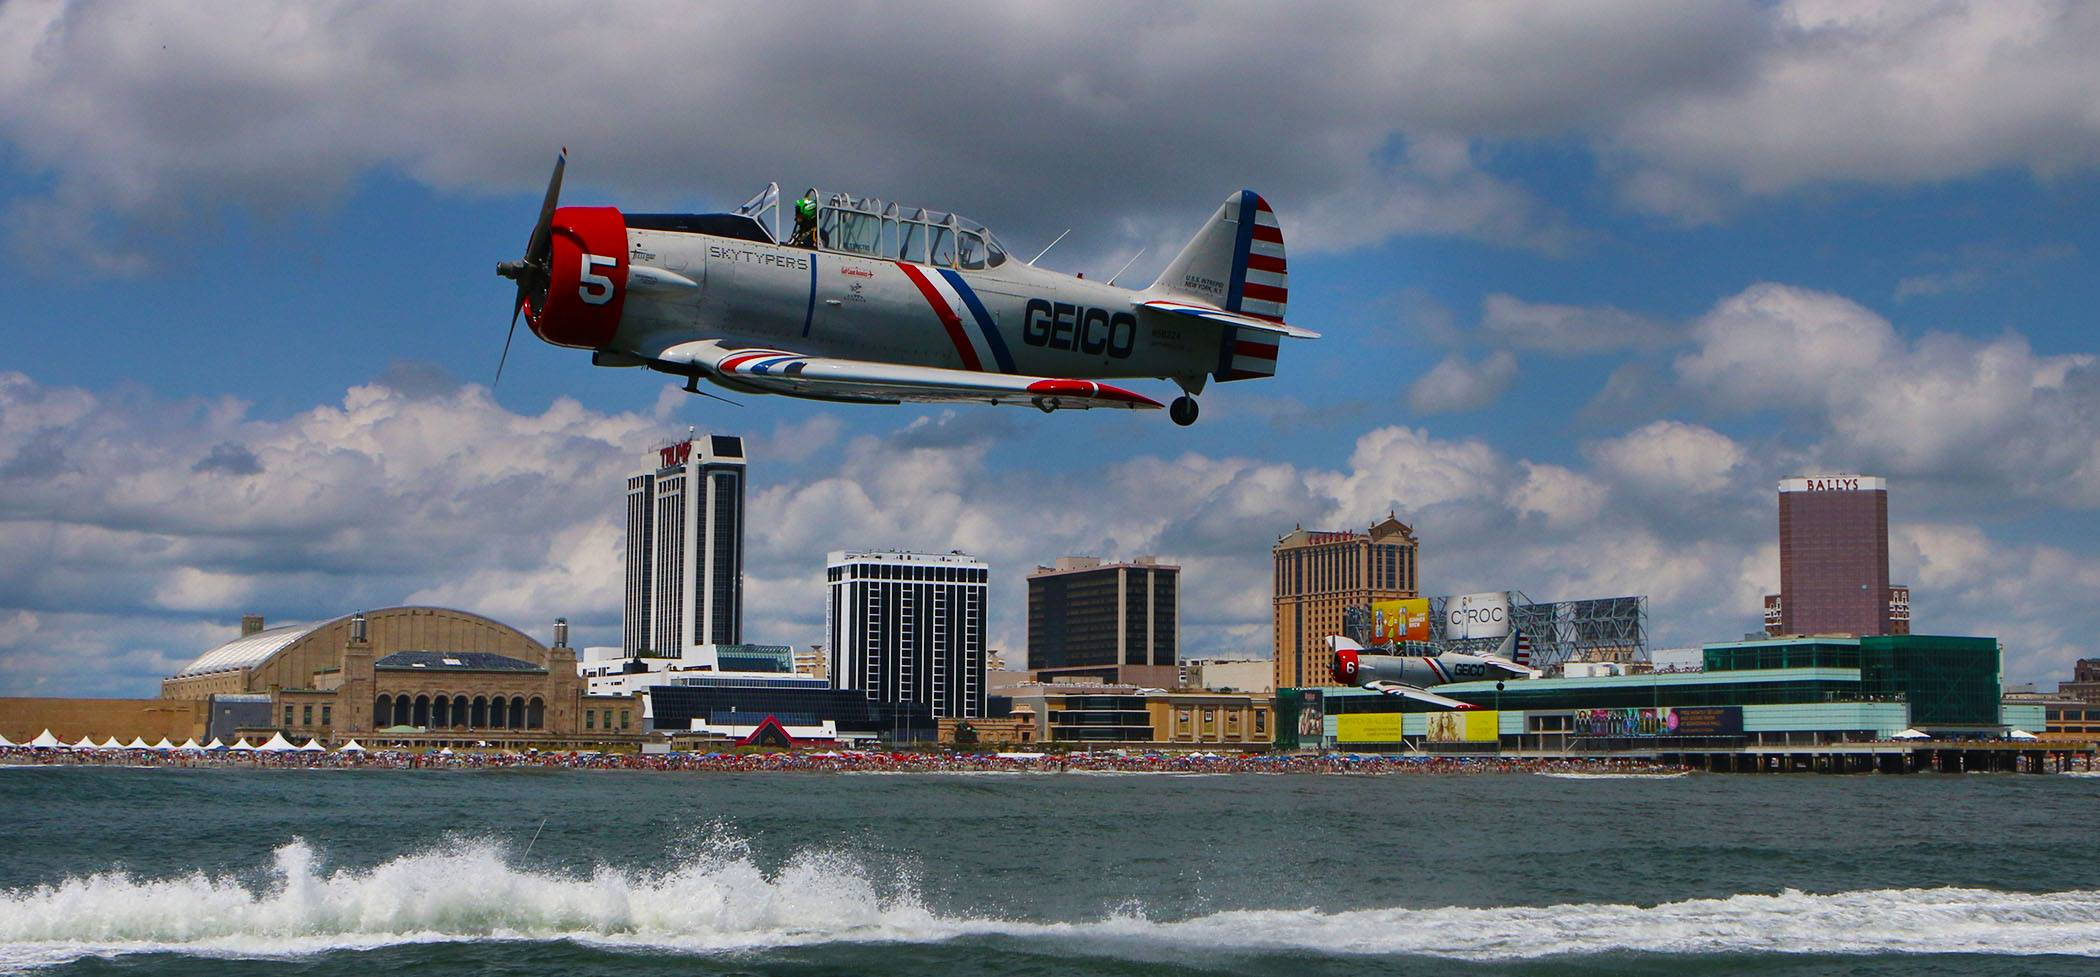 Atlantic City Airshow at the Atlantic City Boardwalk